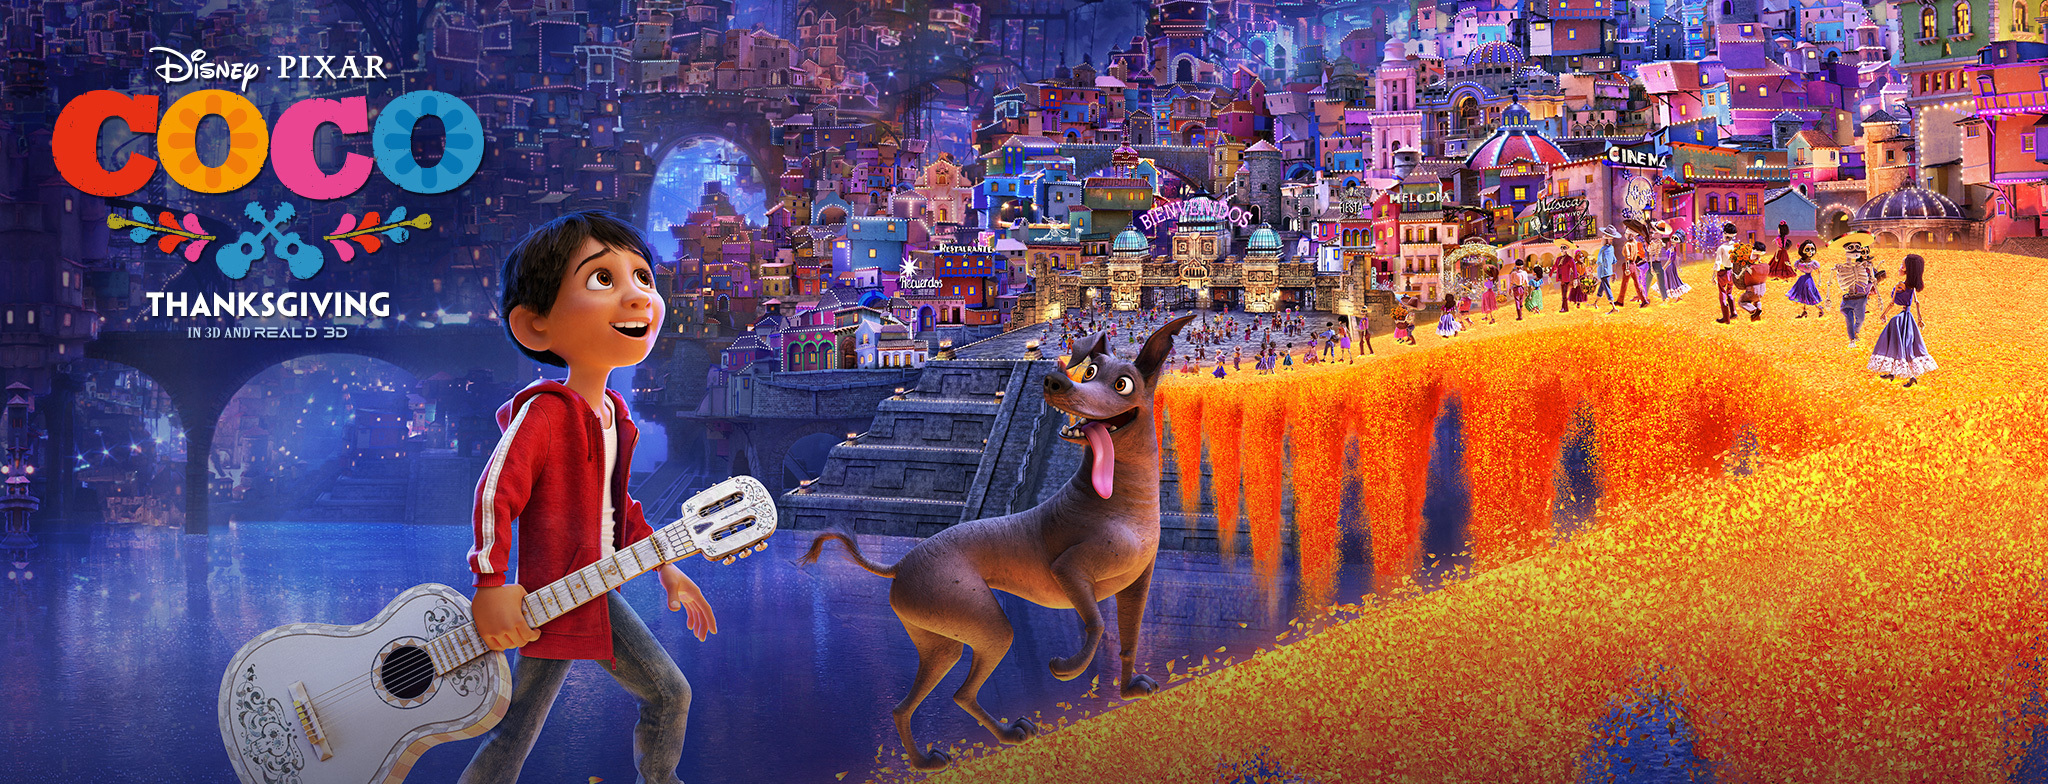 Film Friday: Coco